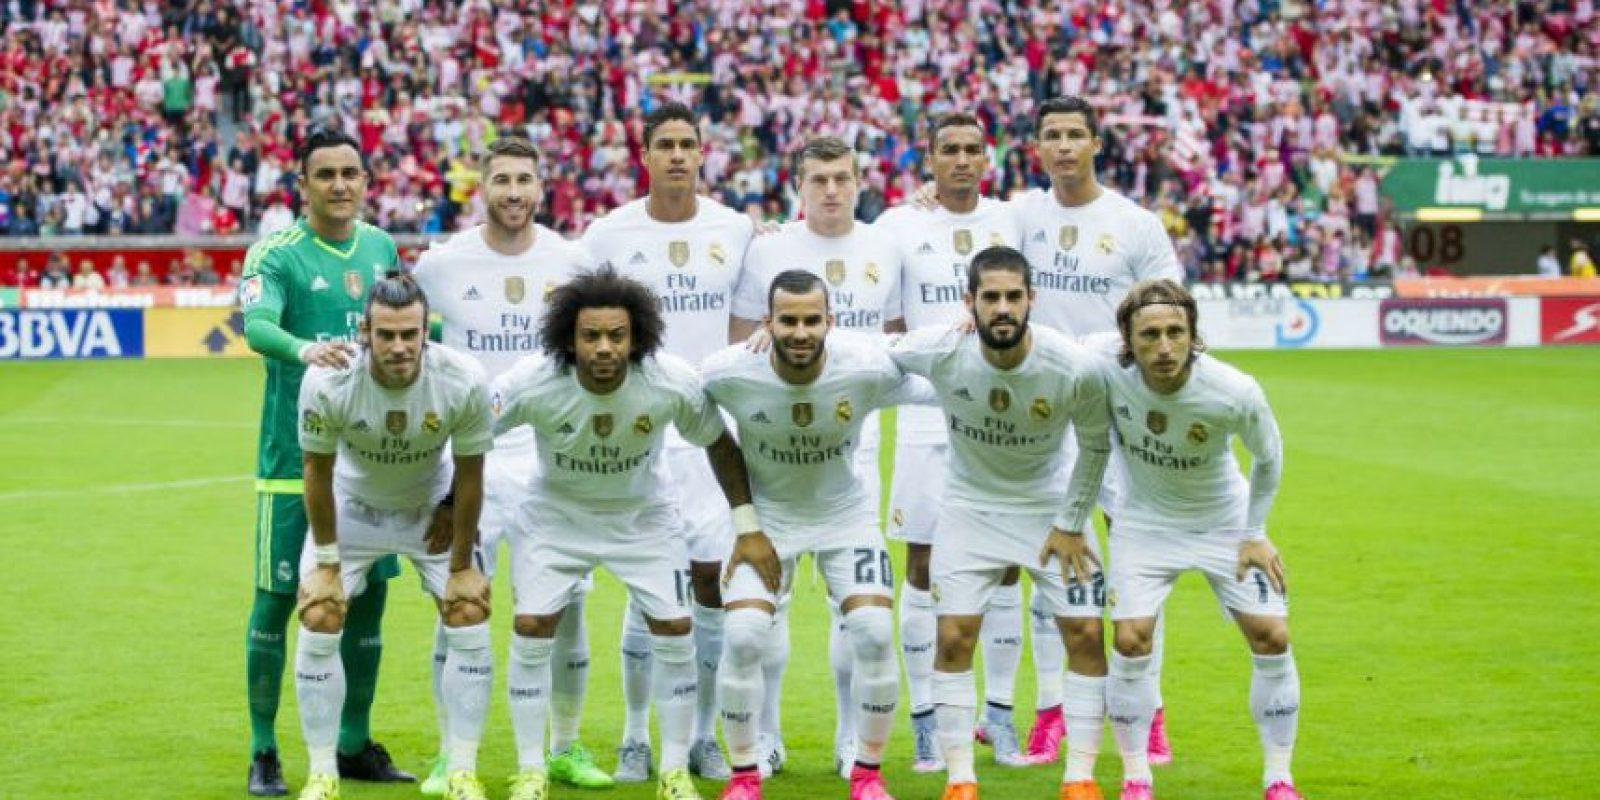 En el Grupo A, Real Madrid está marcado como favorito Foto: Getty Images